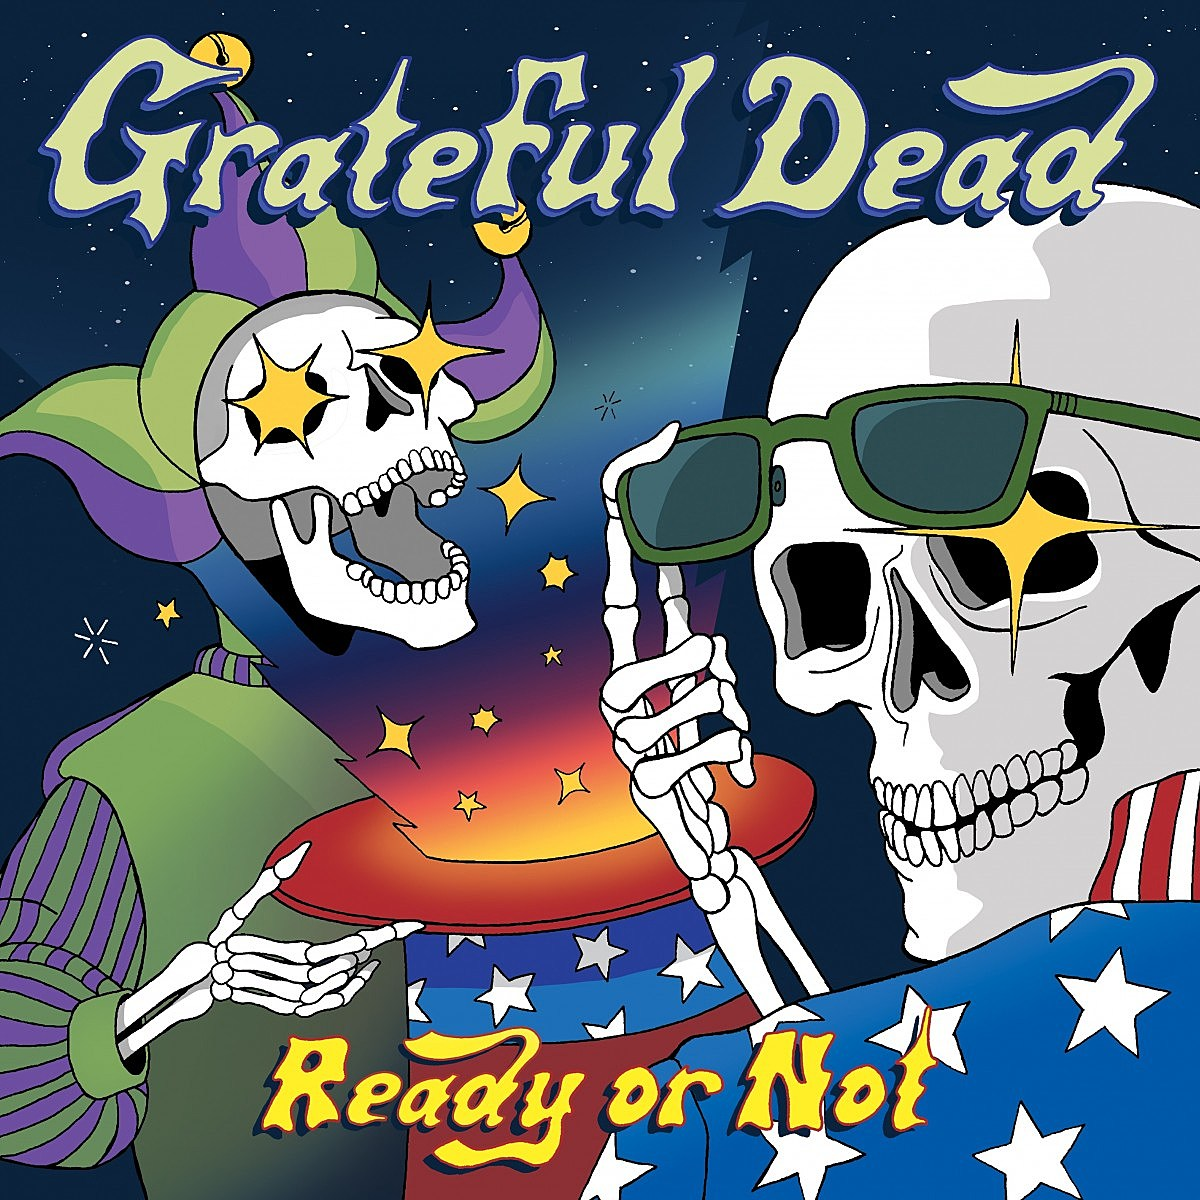 new Grateful Dead live LP w/ unreleased songs + Jerry Garcia photo book coming